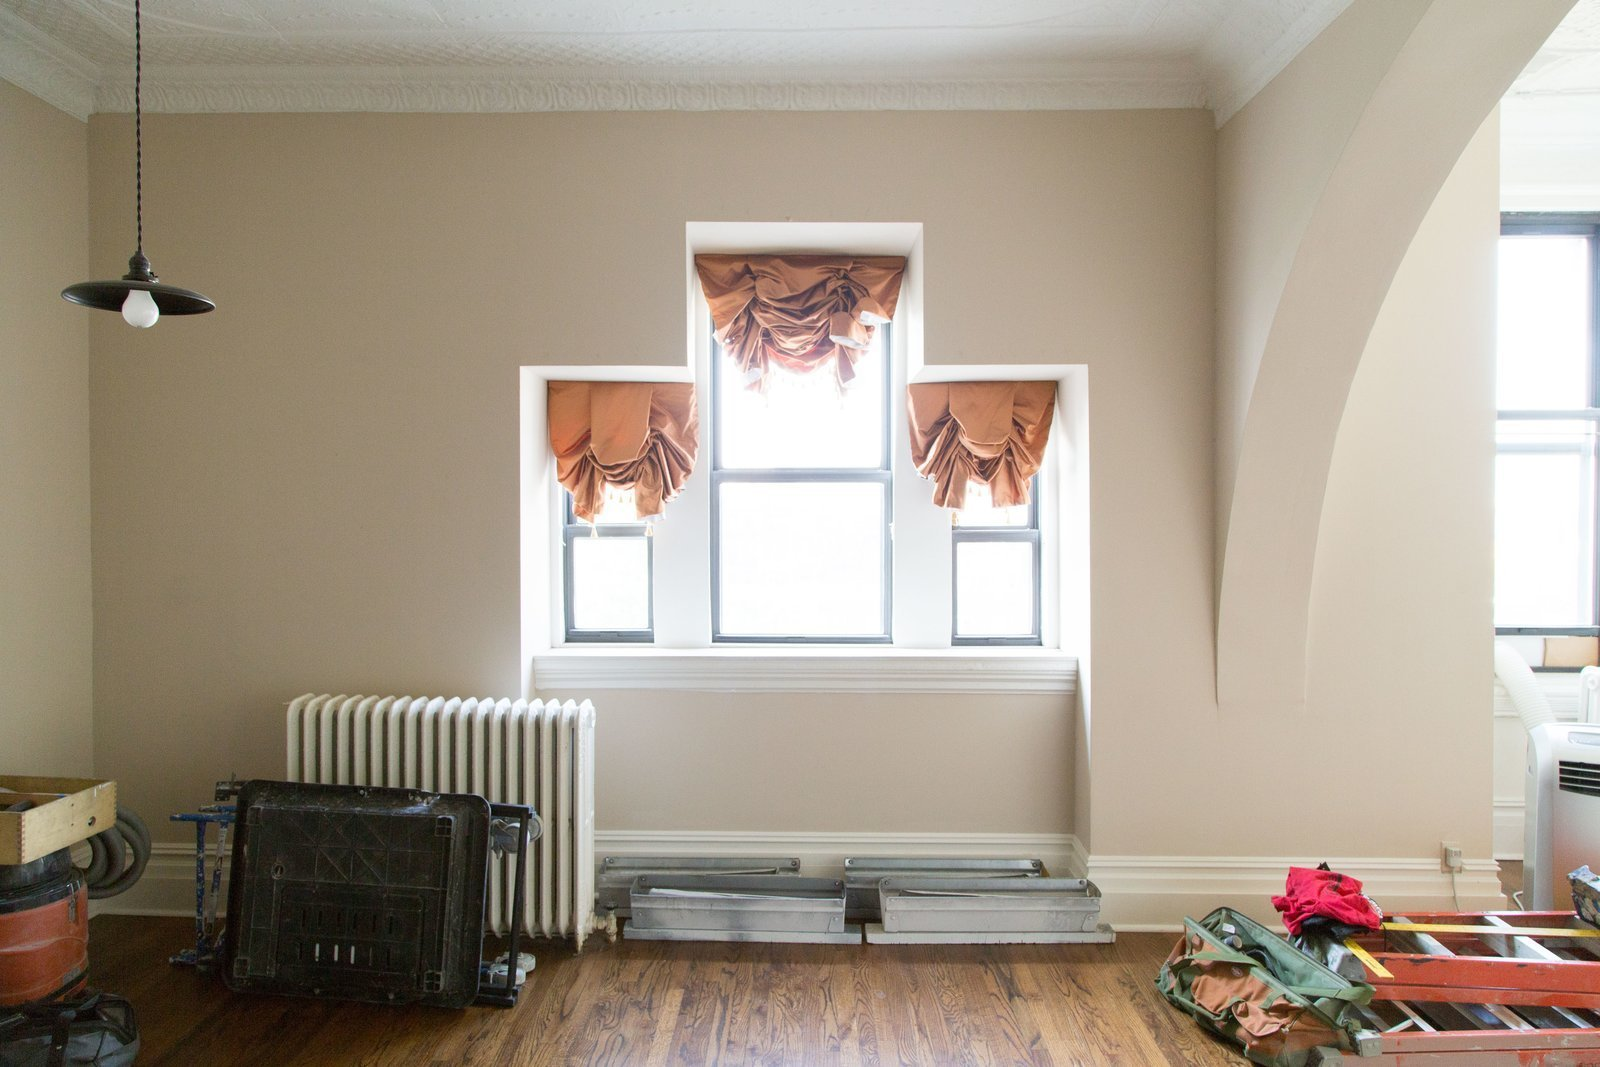 Photo 7 of 22 in A 19th-Century Schoolhouse in Brooklyn Becomes a Classy Apartment